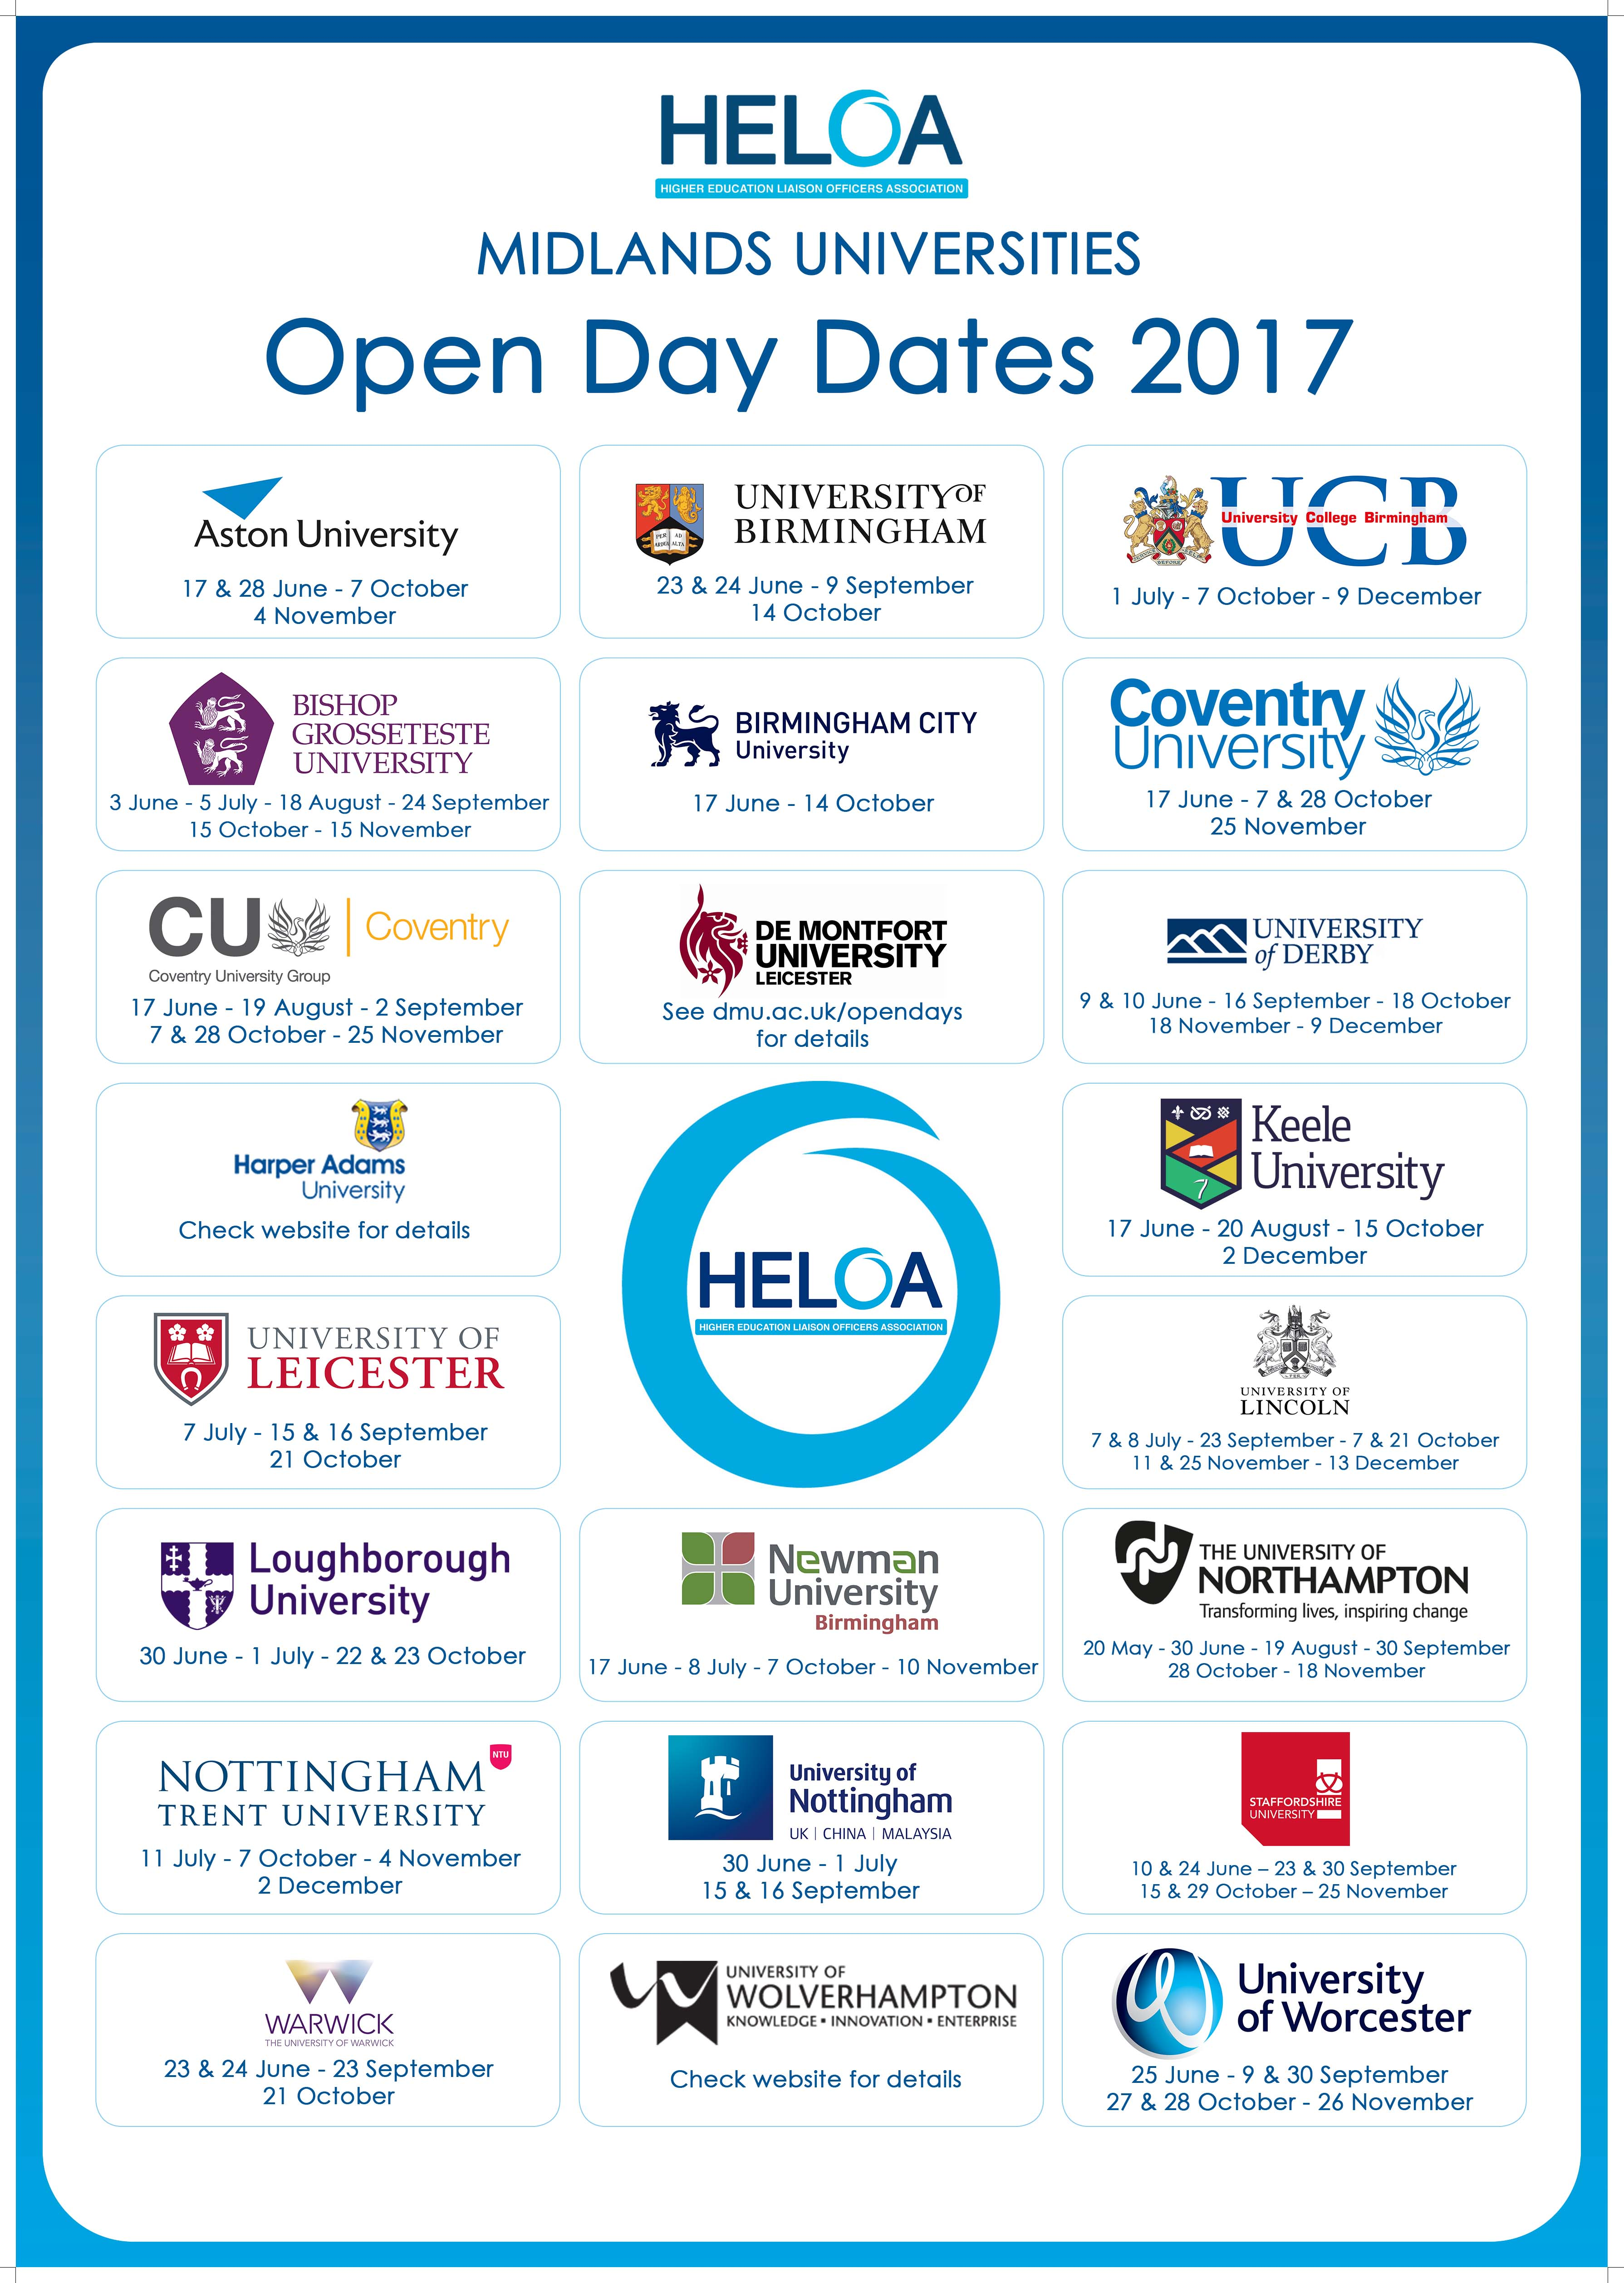 HELOA Midlands Open Day Poster 2017